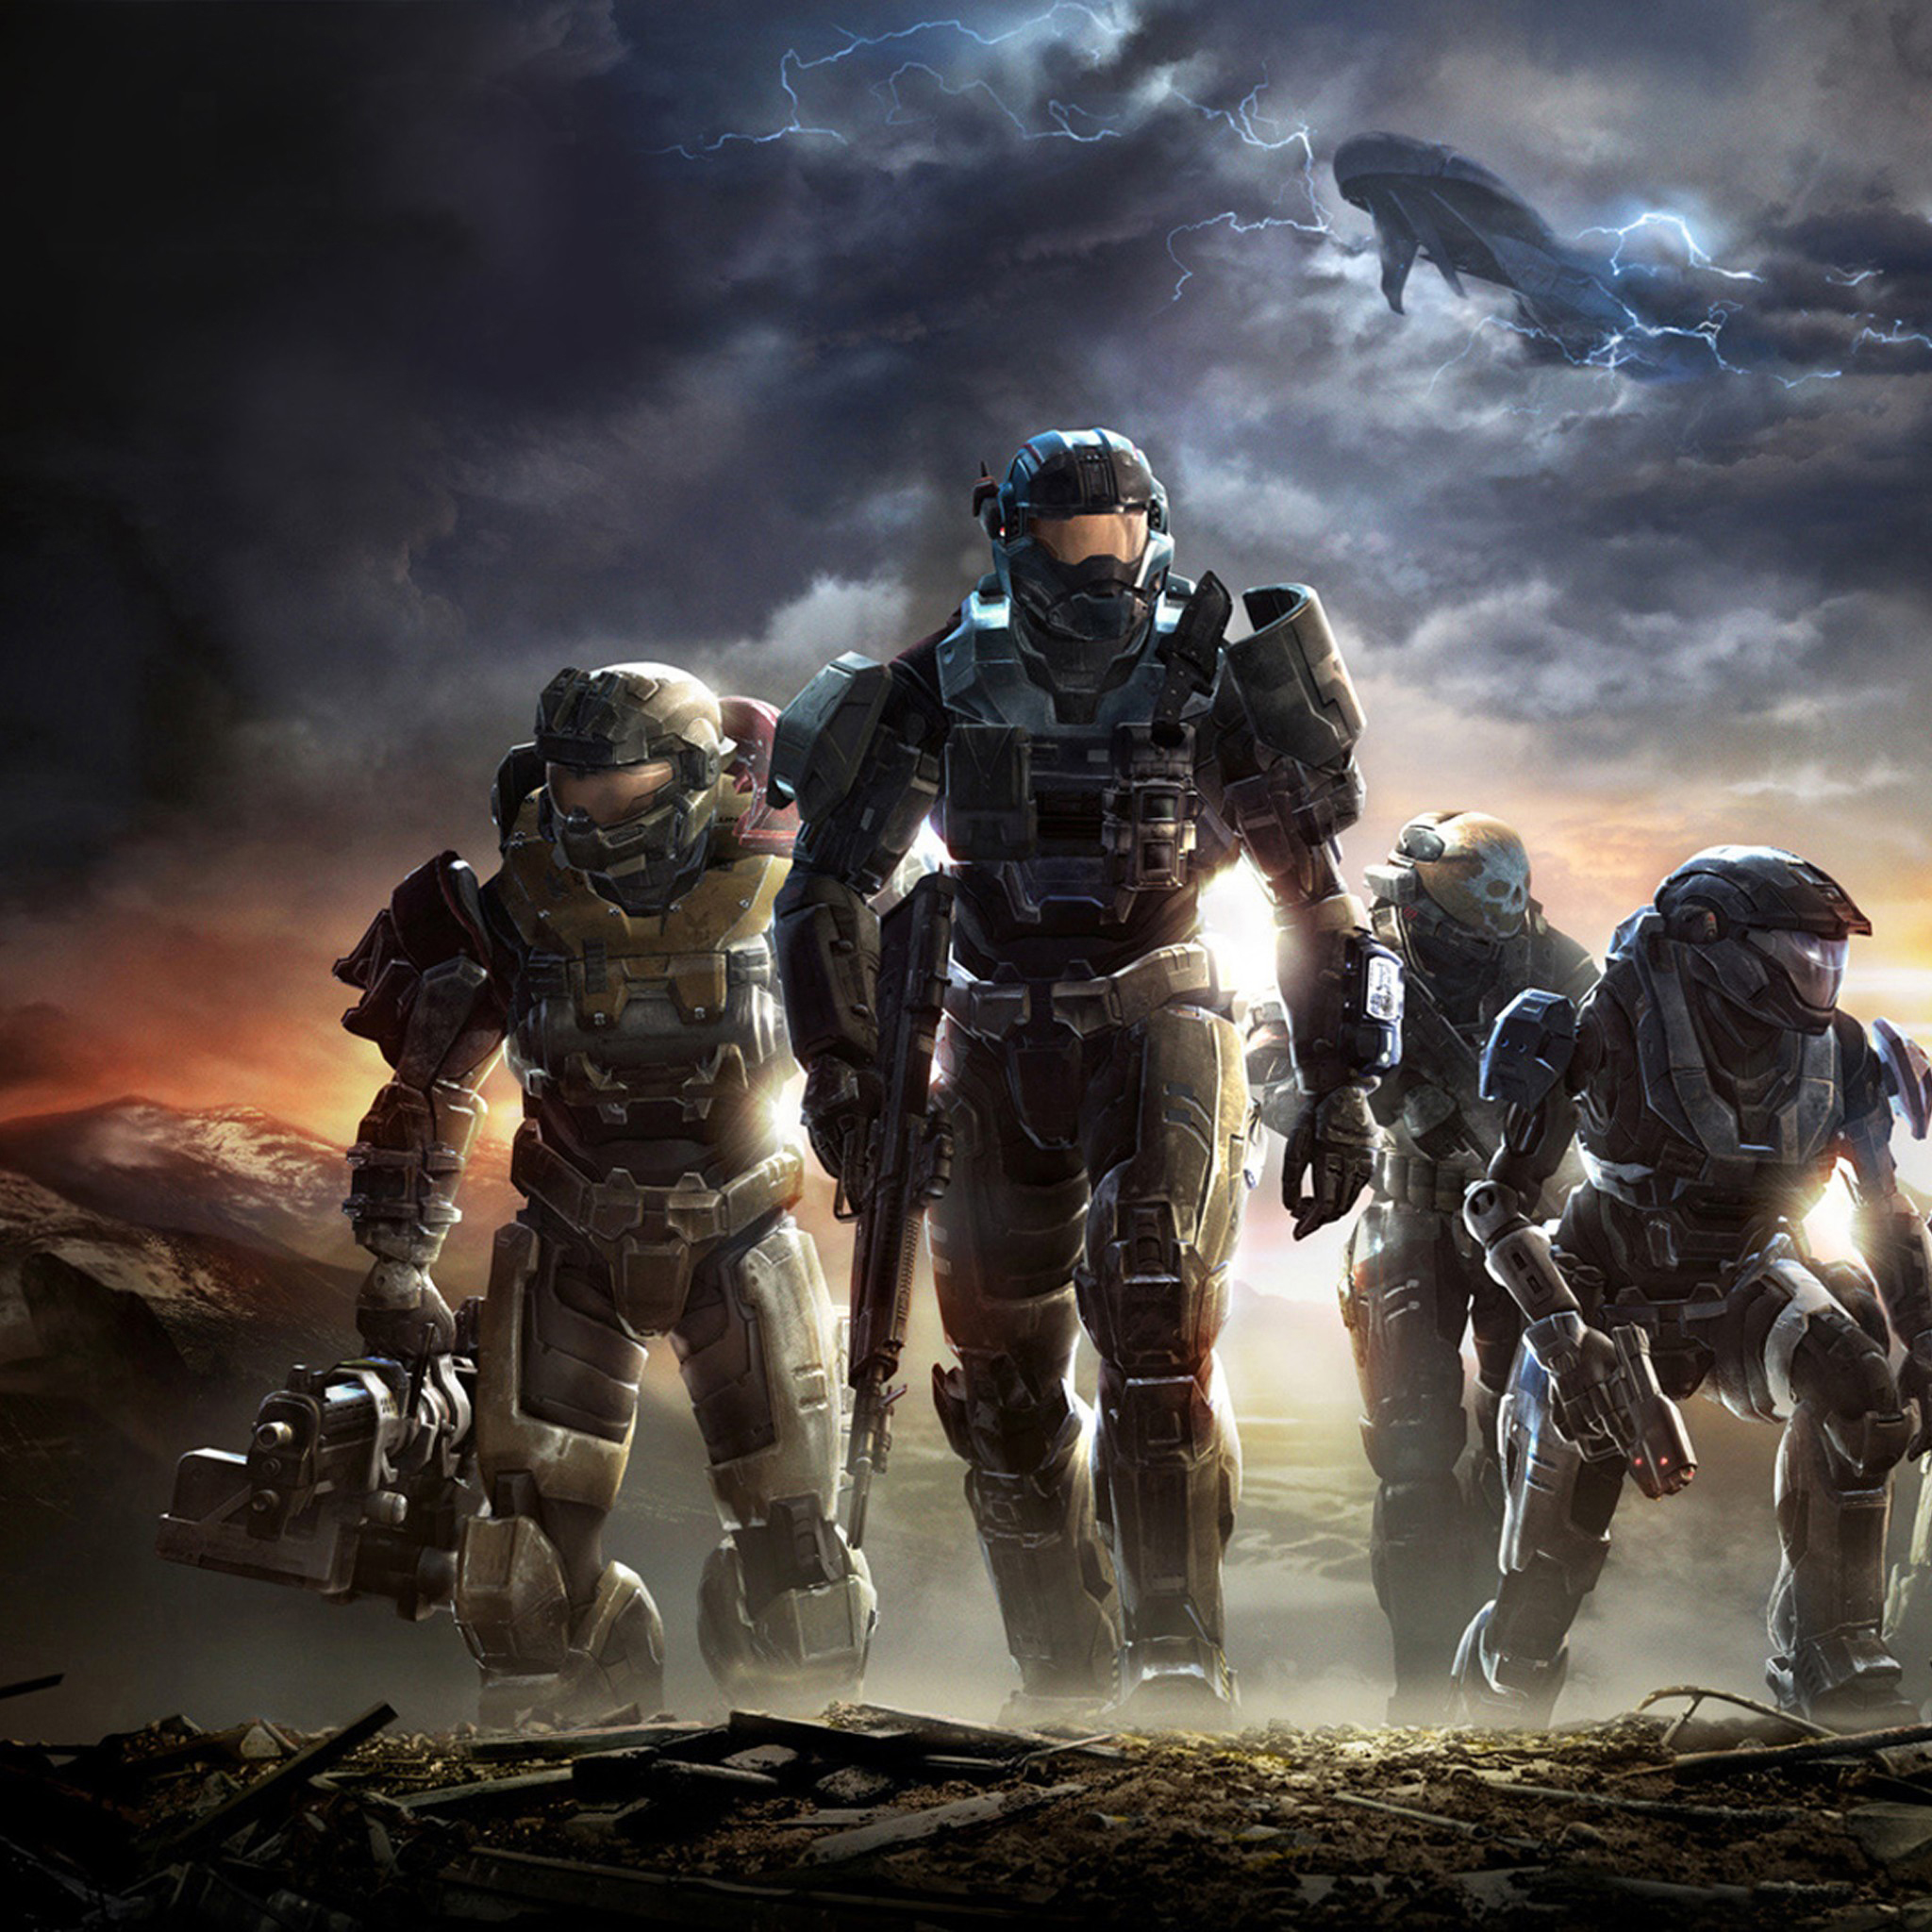 Halo Reach 3Wallpapers iPad Retina Halo Reach   iPad Retina